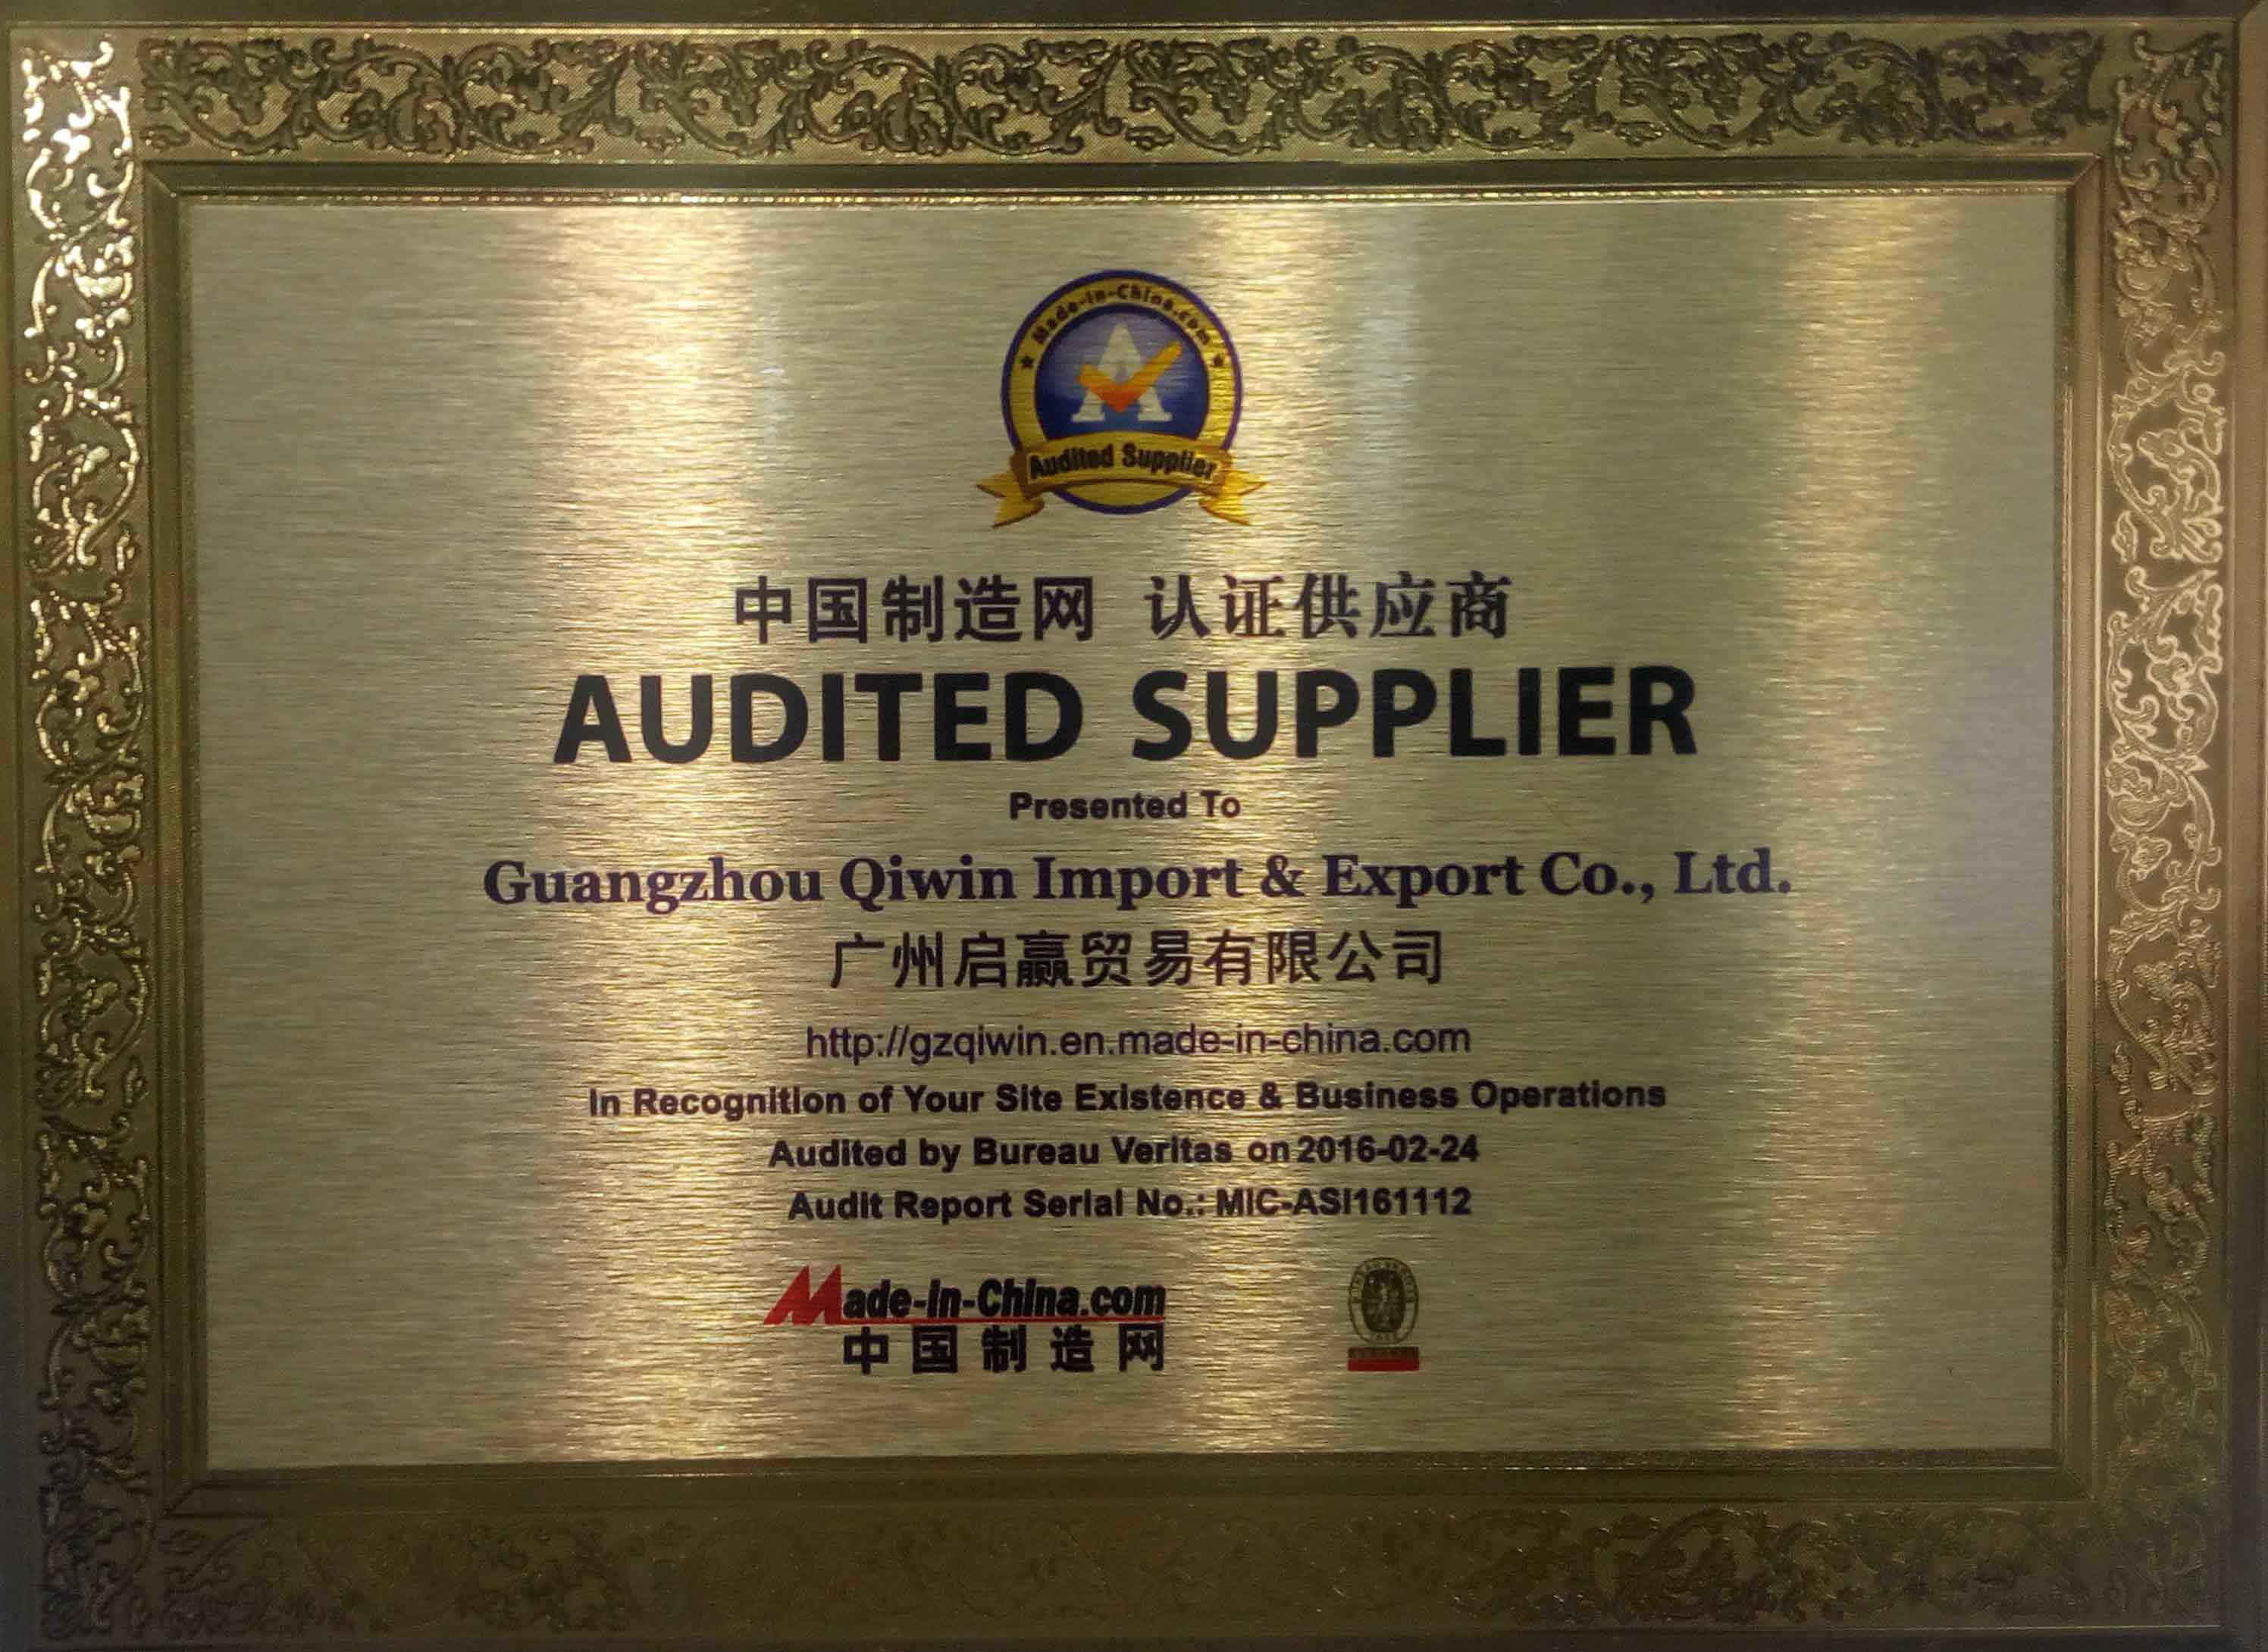 Certificate of Audited Supplier